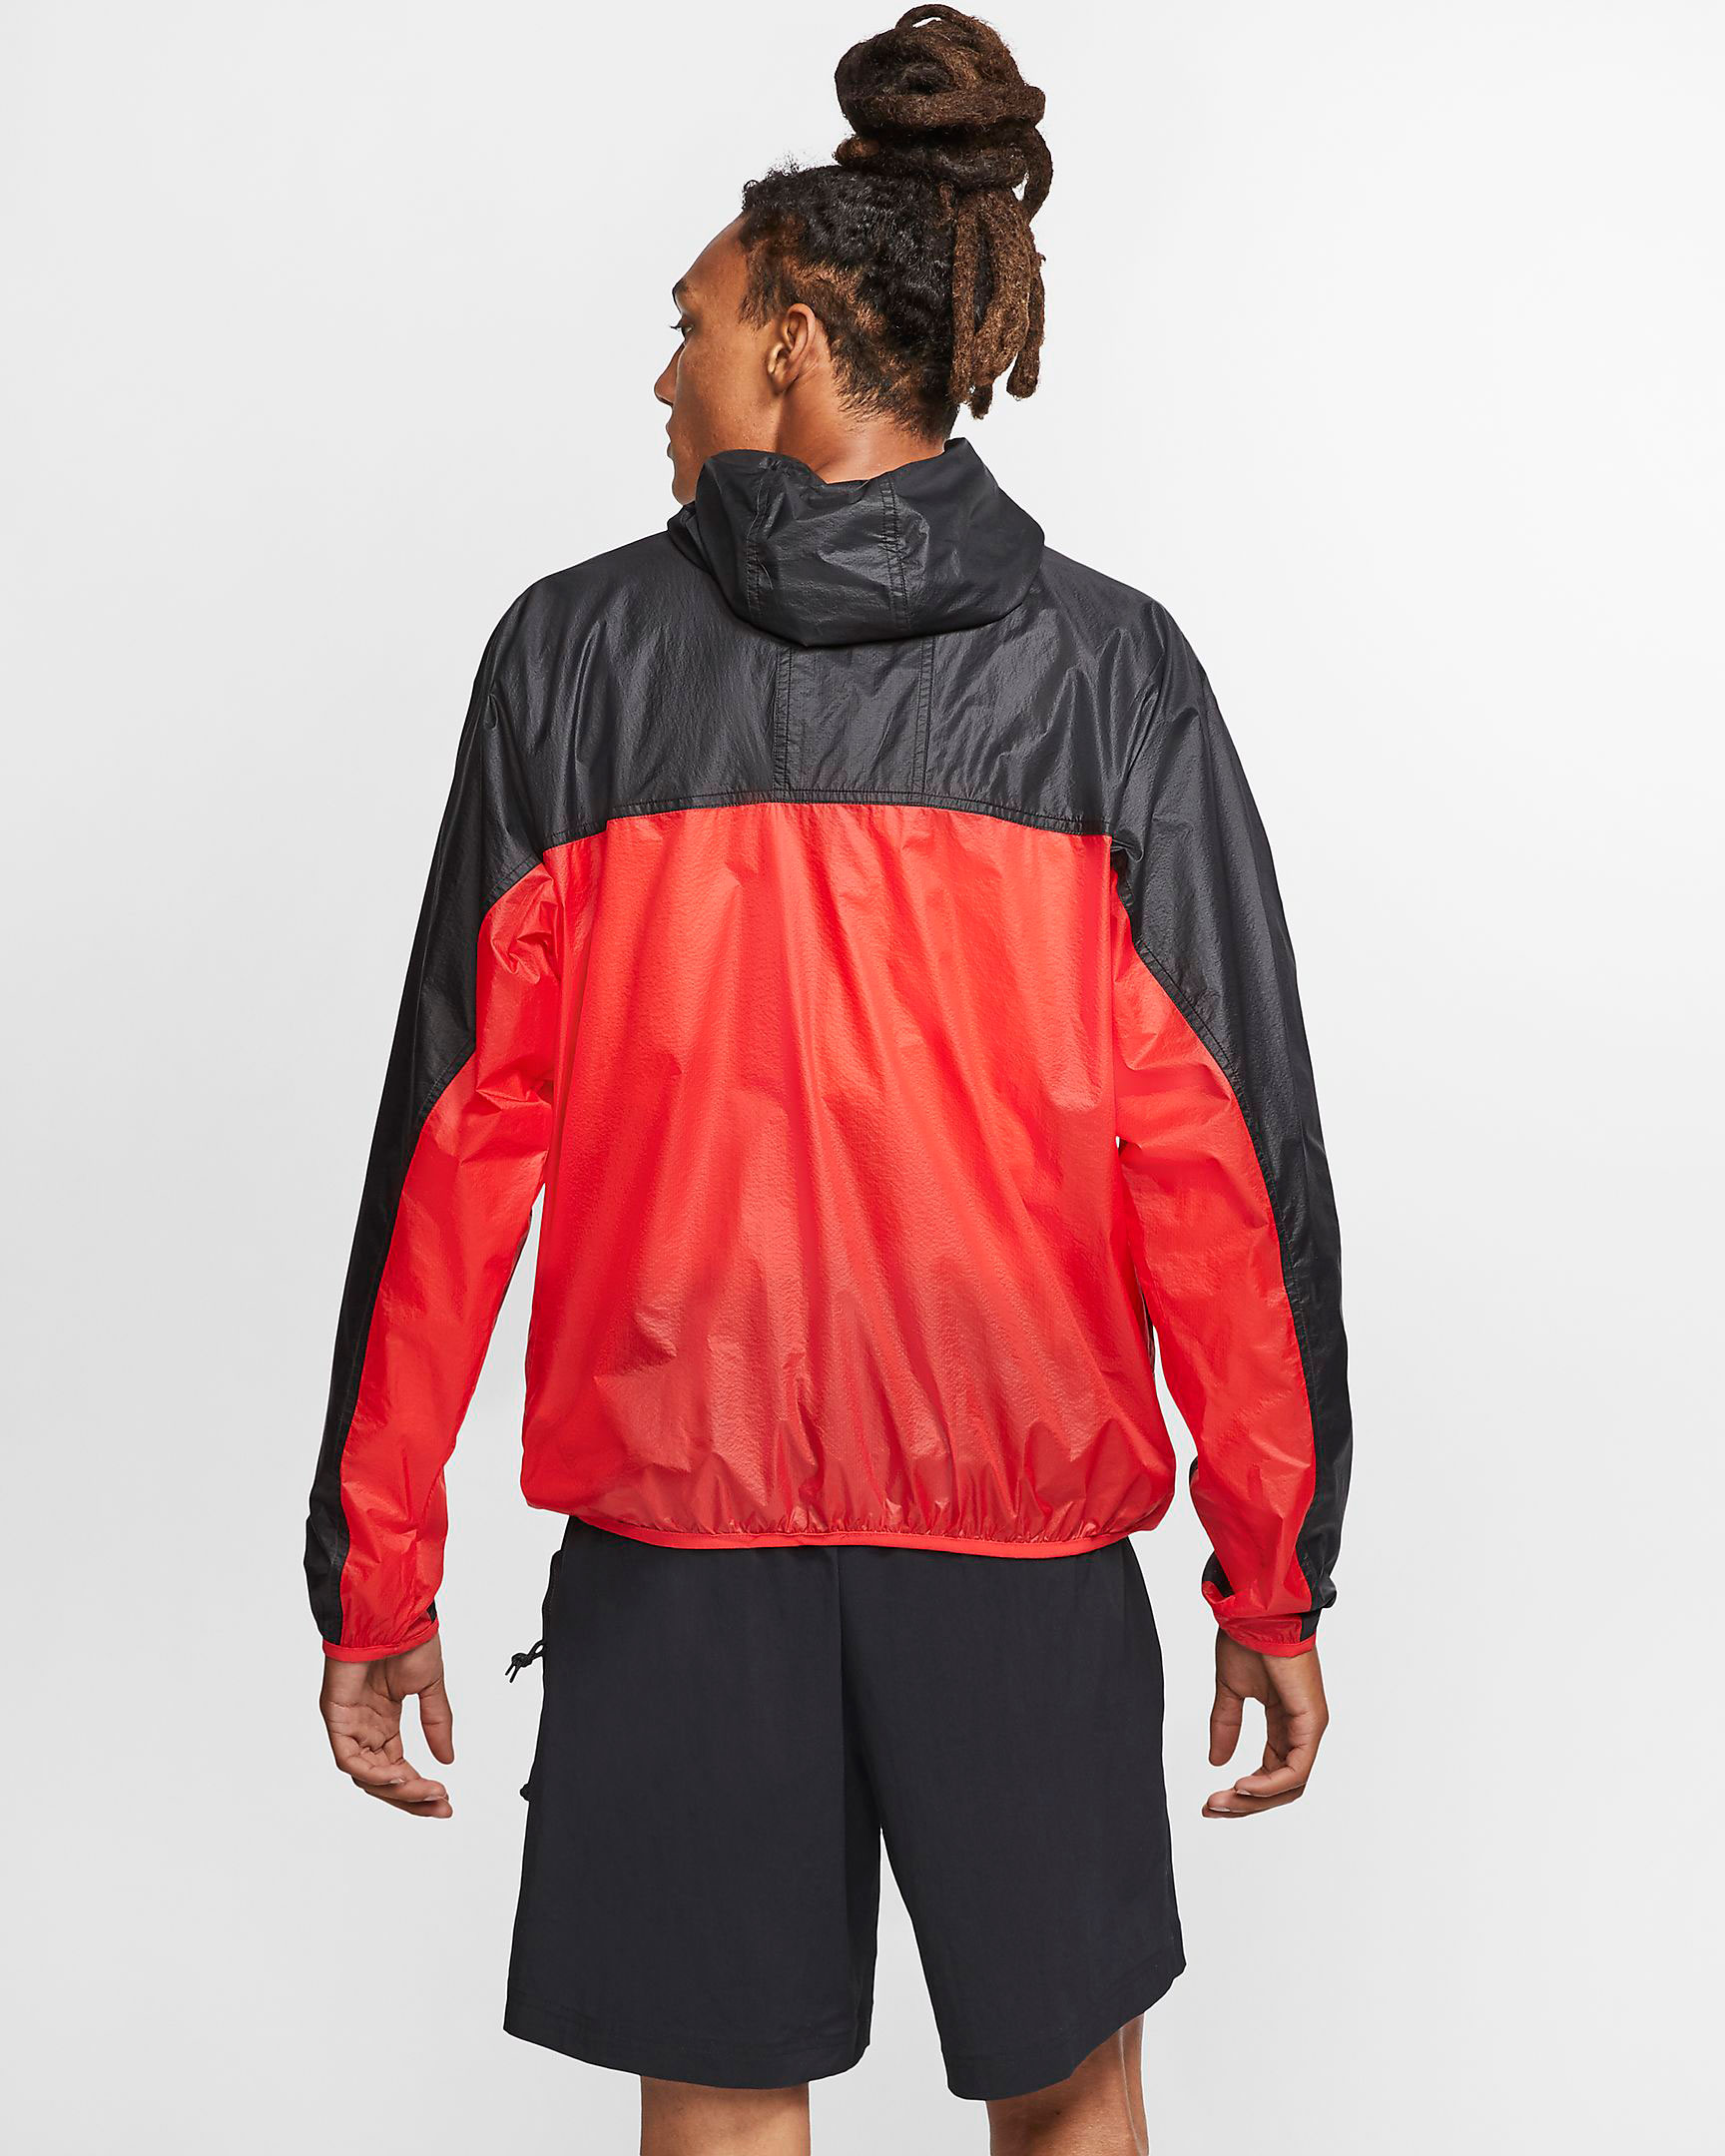 nike-acg-red-black-jacket-2